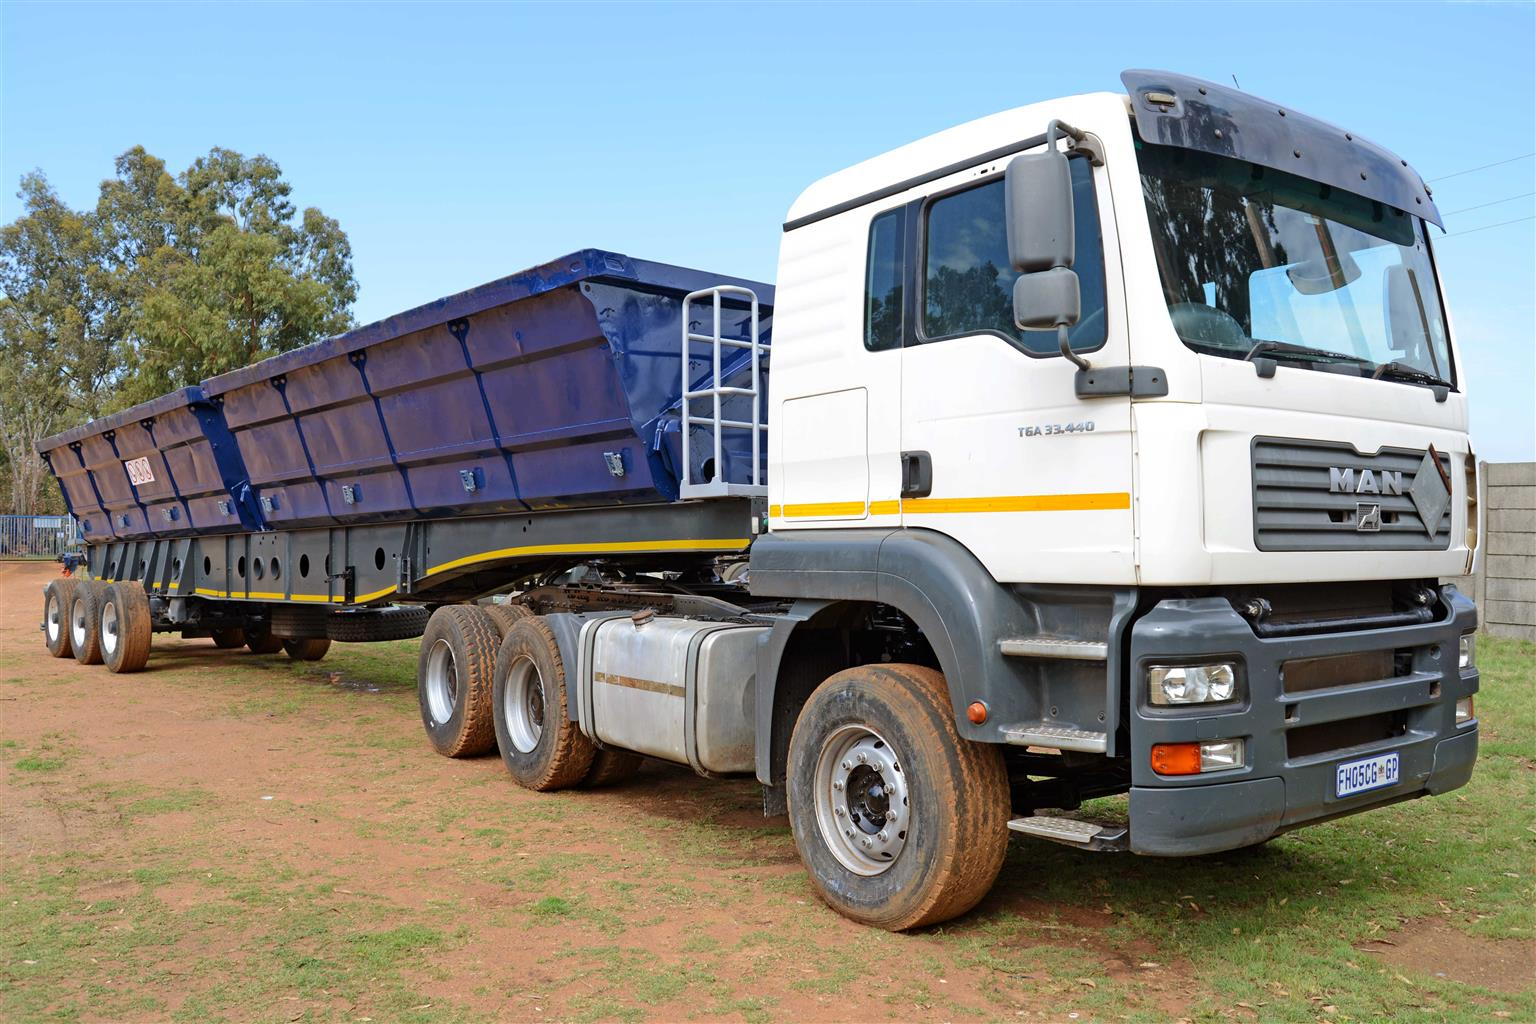 Start Your Own Trucking Business, 34 Ton Side Tippers, Become A Trucker In Gaborone, Botswana